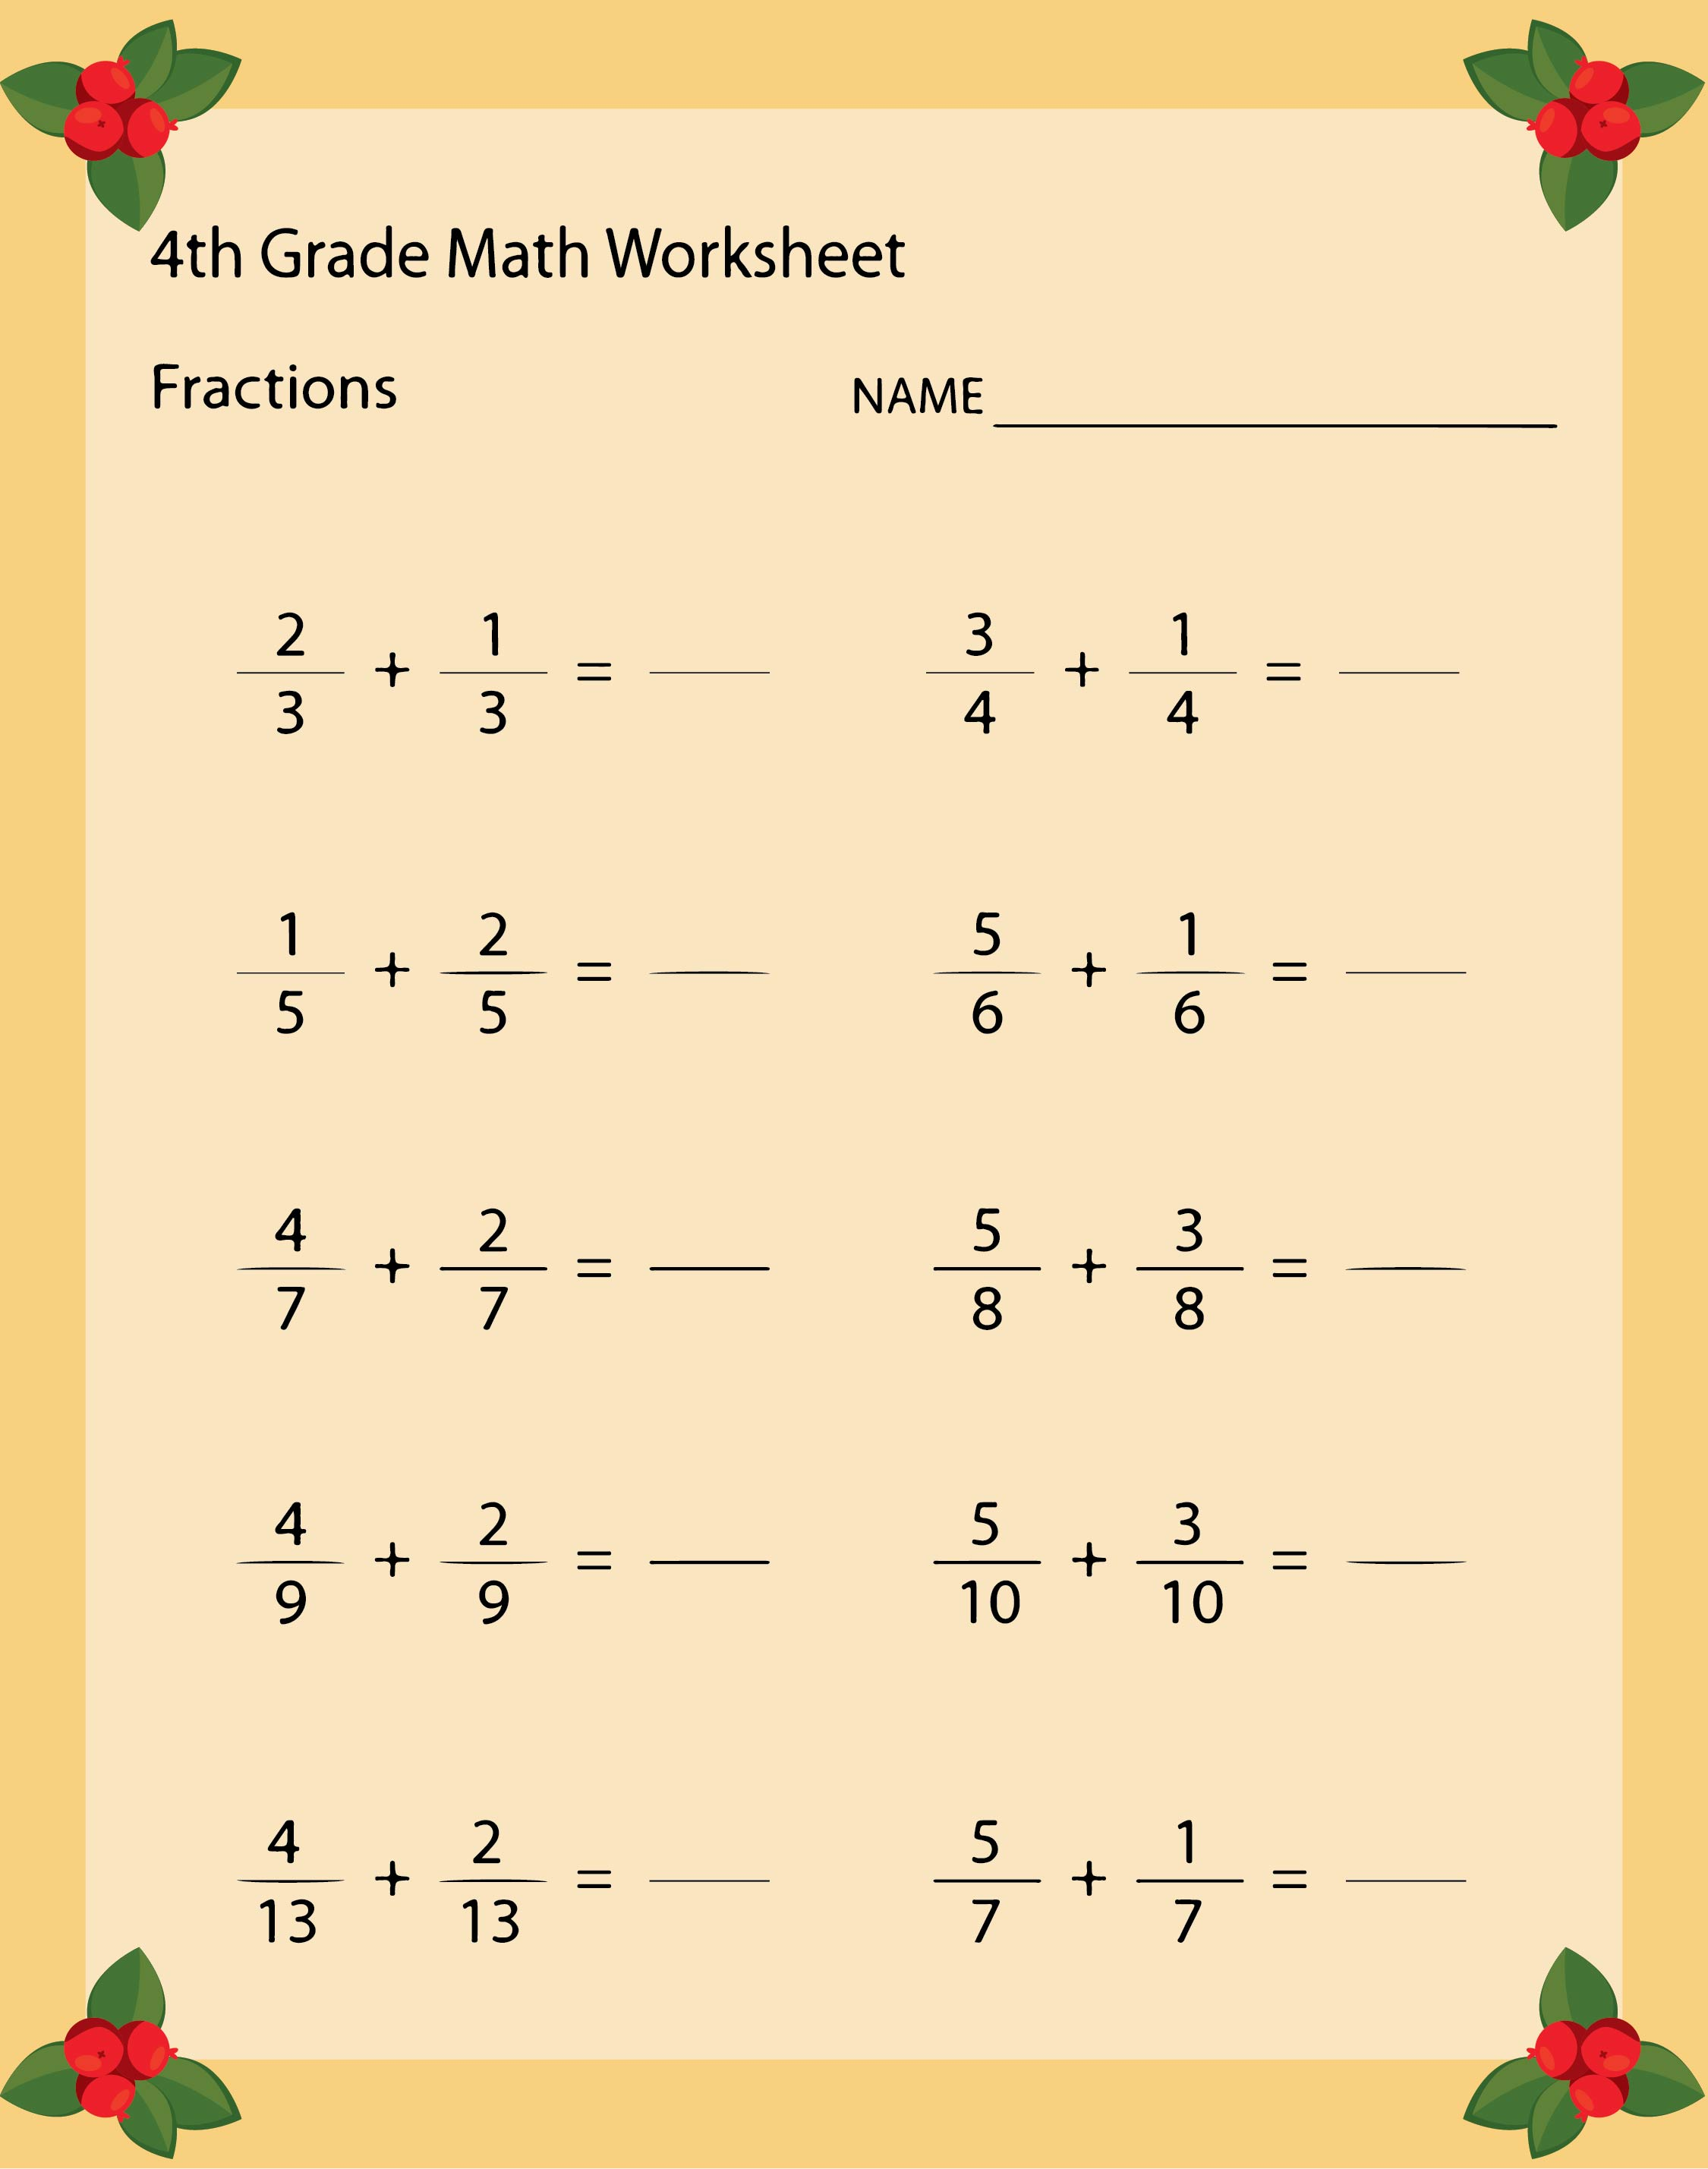 4th Grade Math Worksheets Free Printable For Thanksgiving - 2nd Grade ...